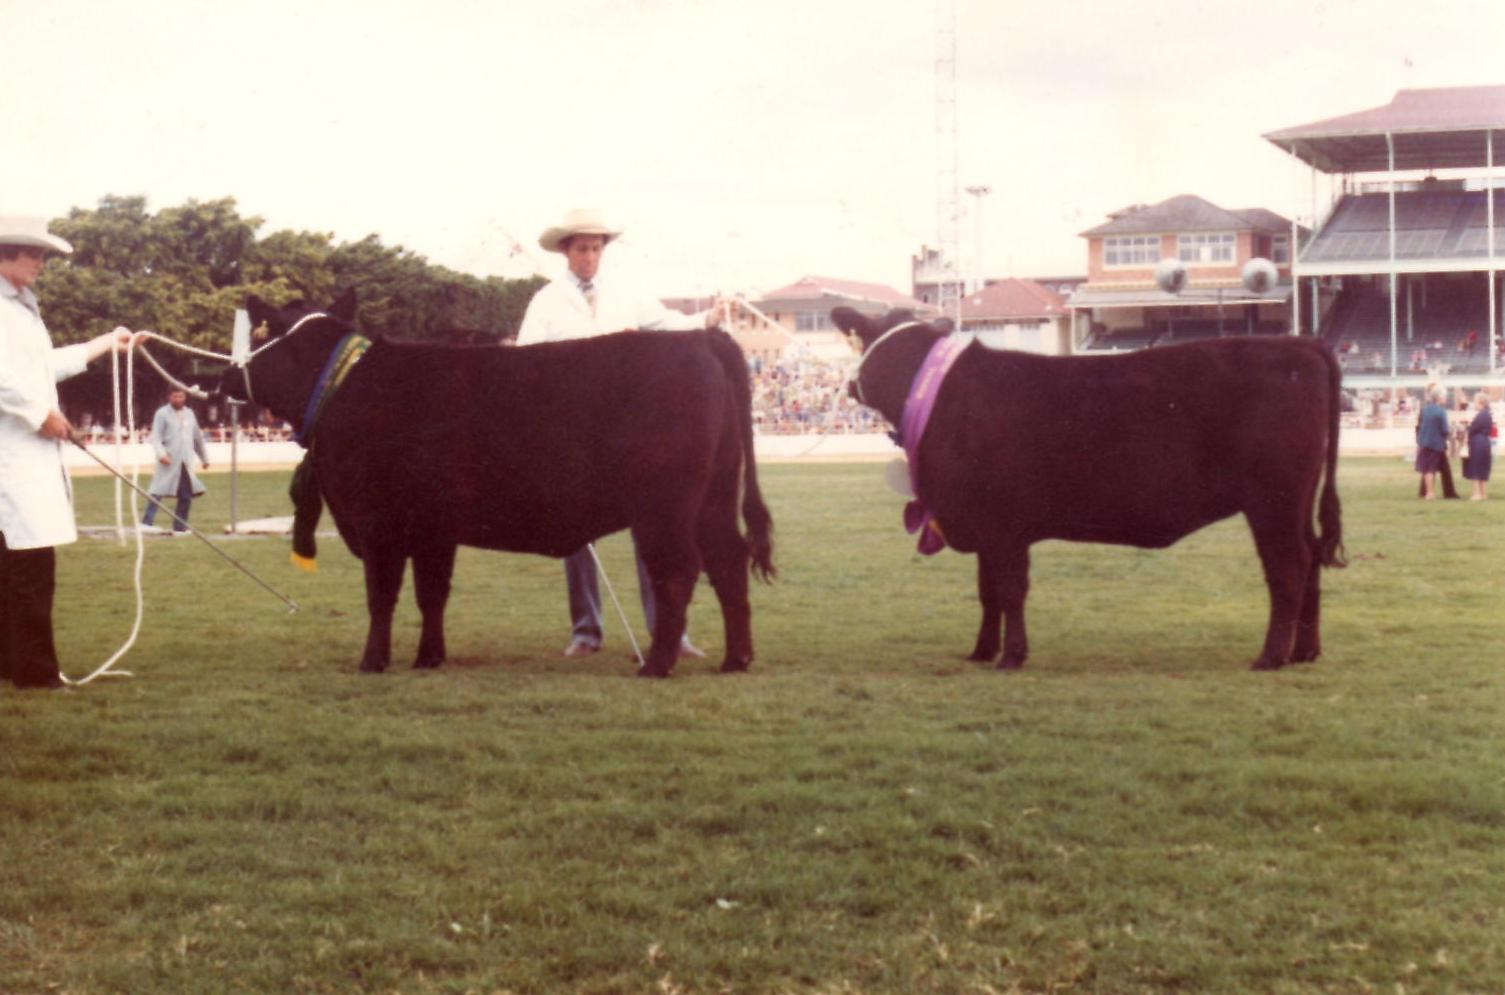 Junior Champion & Reserve Junior Champion Female, RNA 1983 - Glenoch Wattle B1 & Glenoch Flower A17